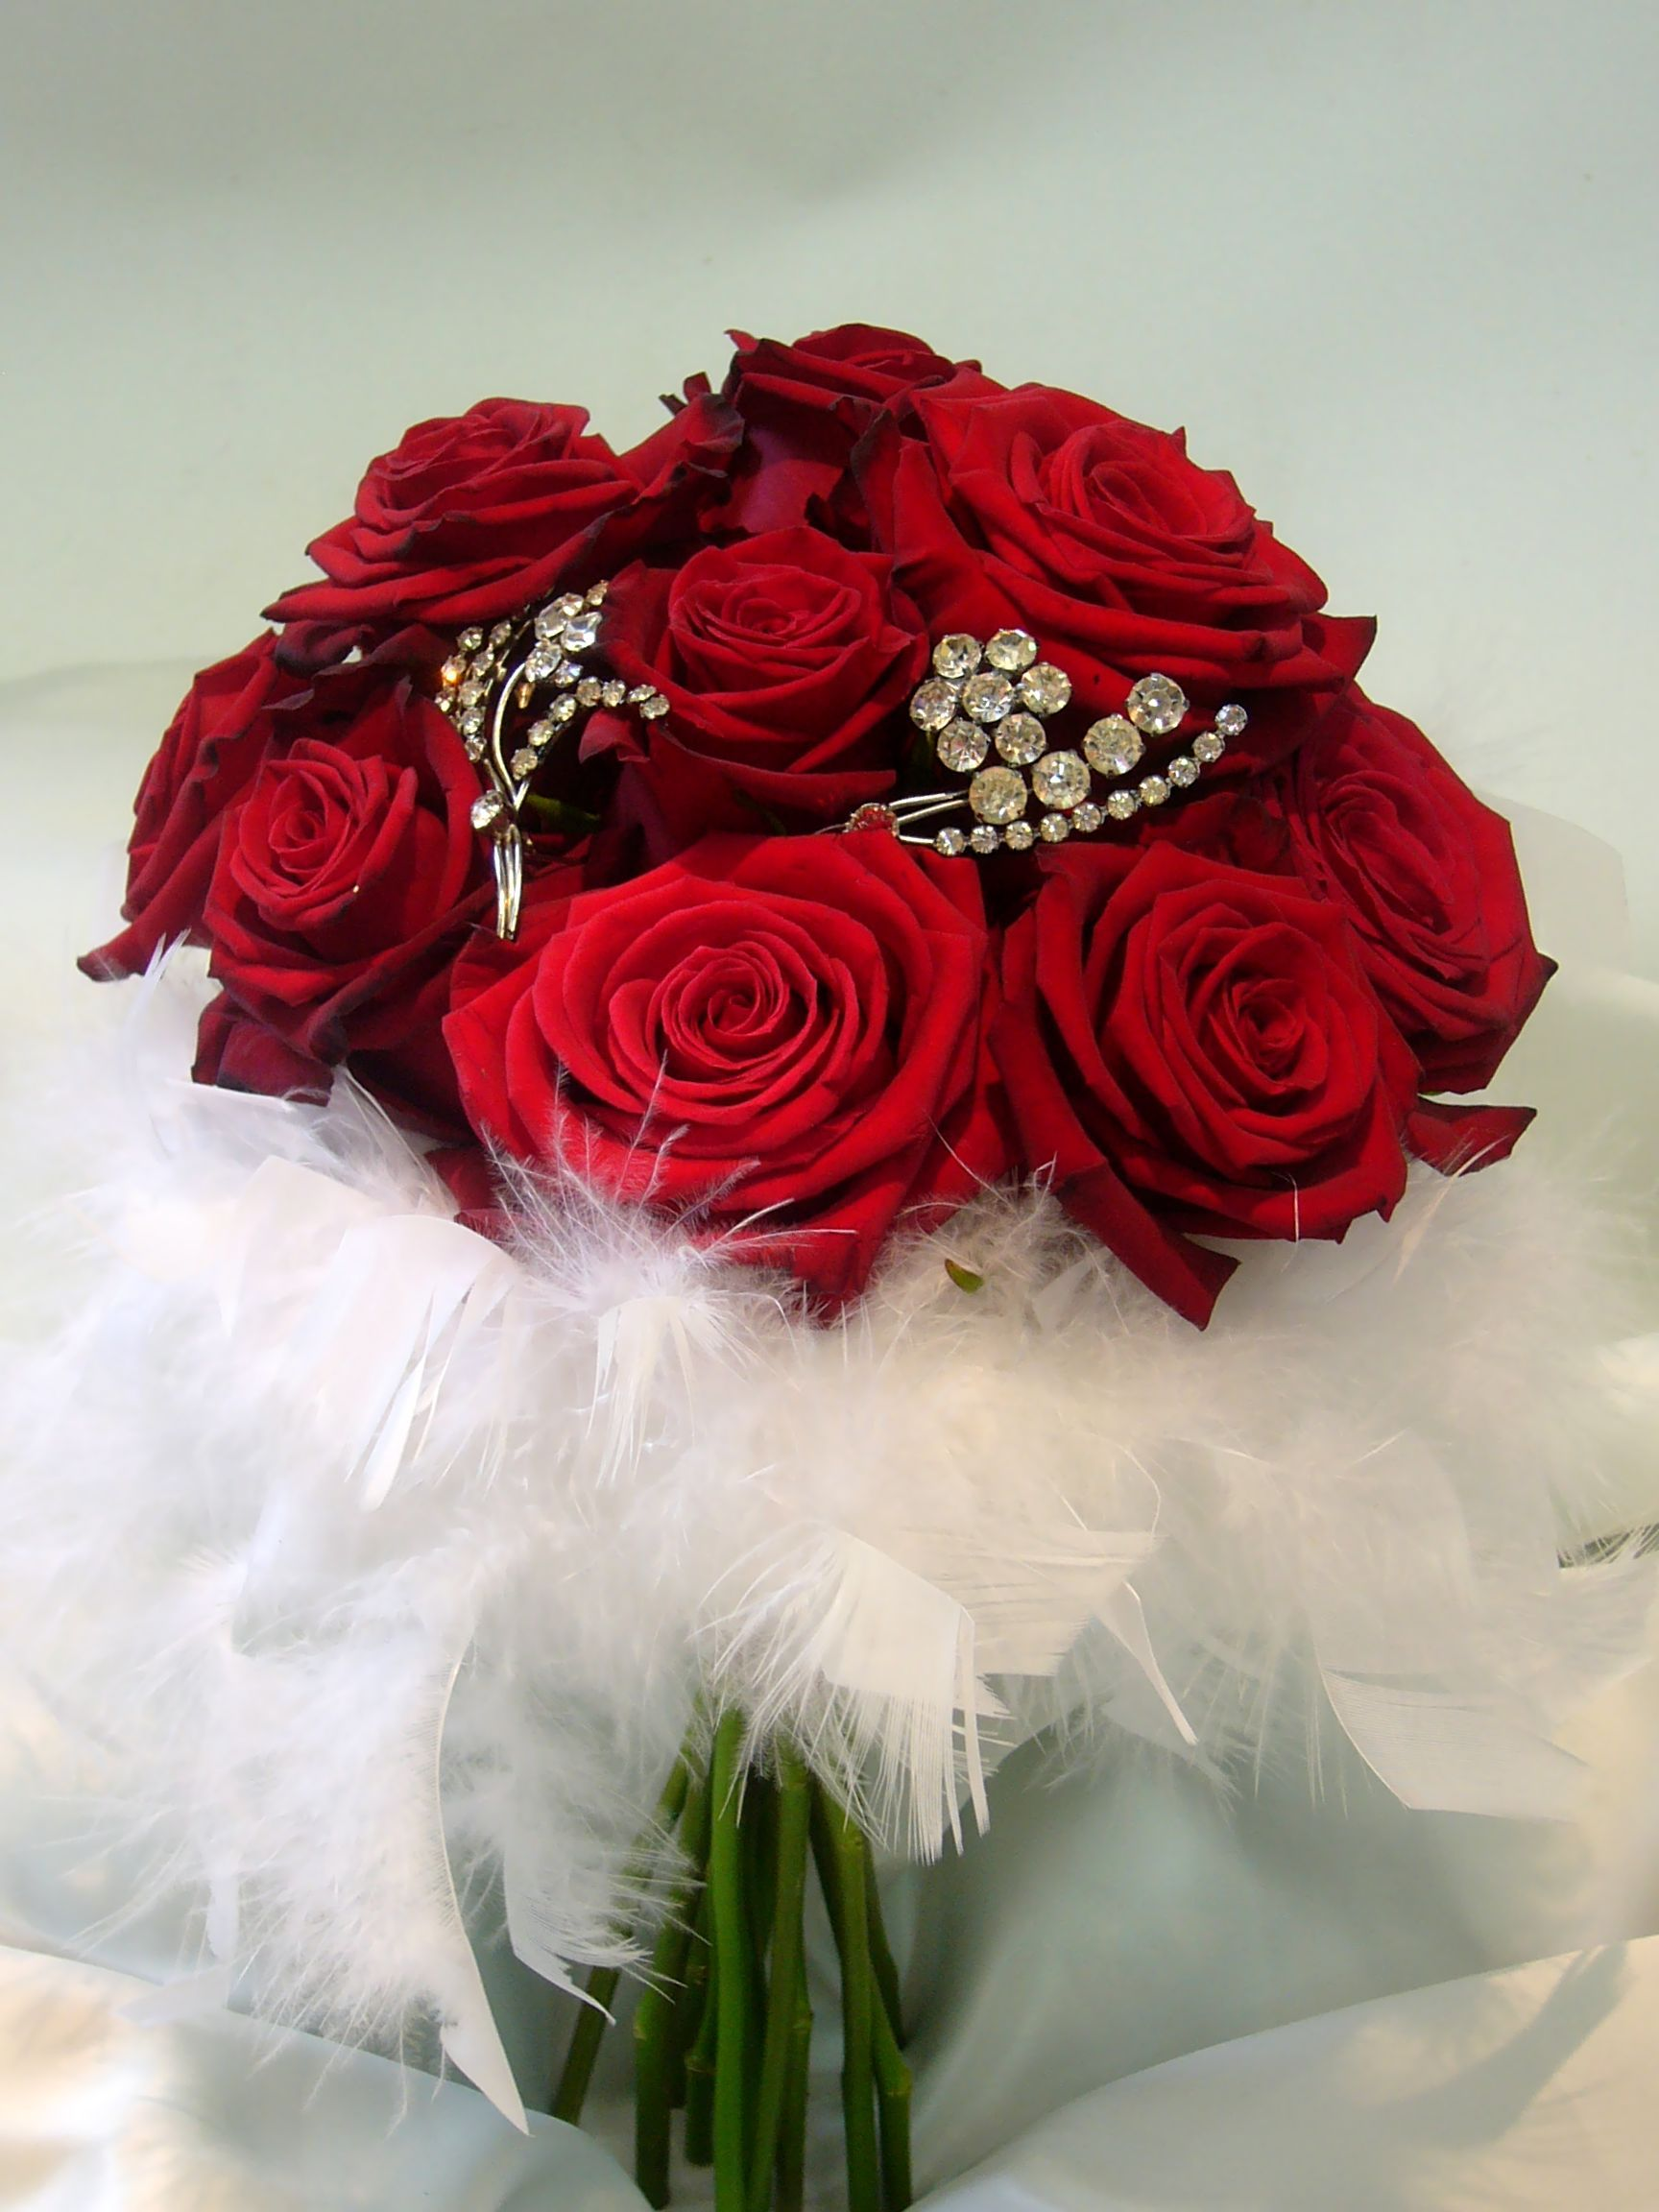 Feather And Flower Wedding Arrangements Roses Surrounded By White Feathers With